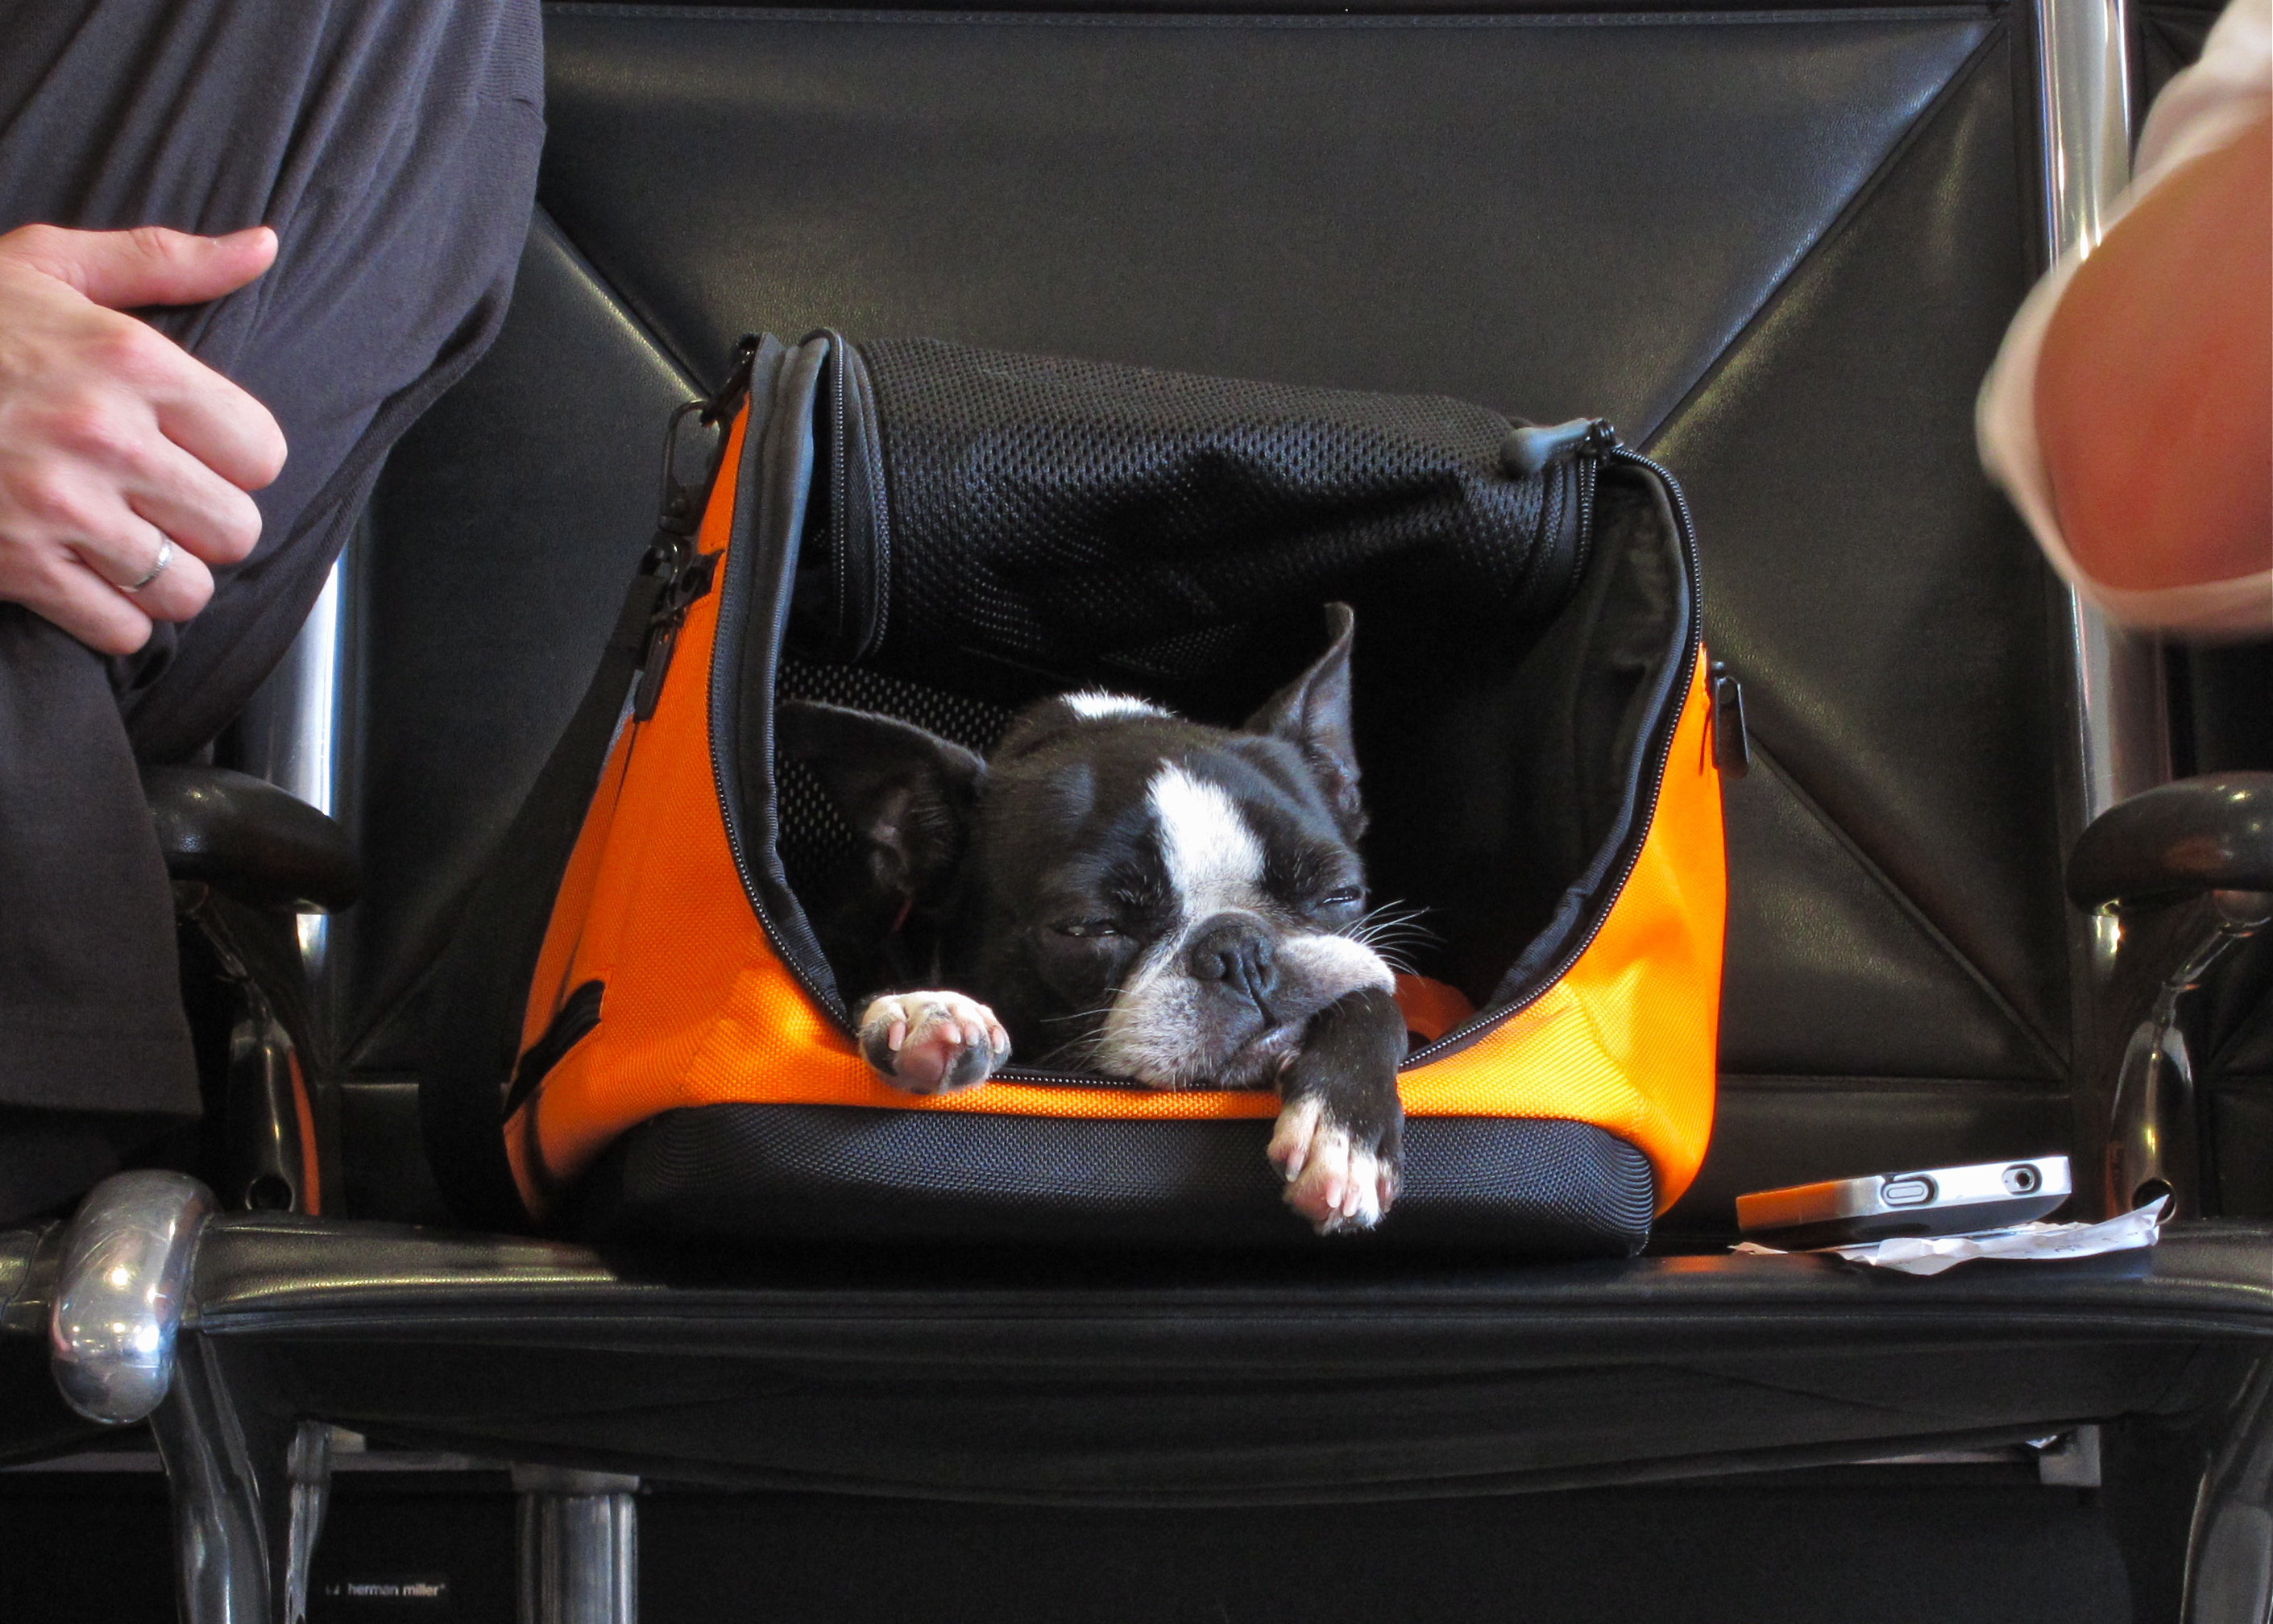 Dog waits in its carry-on container at airport in Atlanta, Georgia.